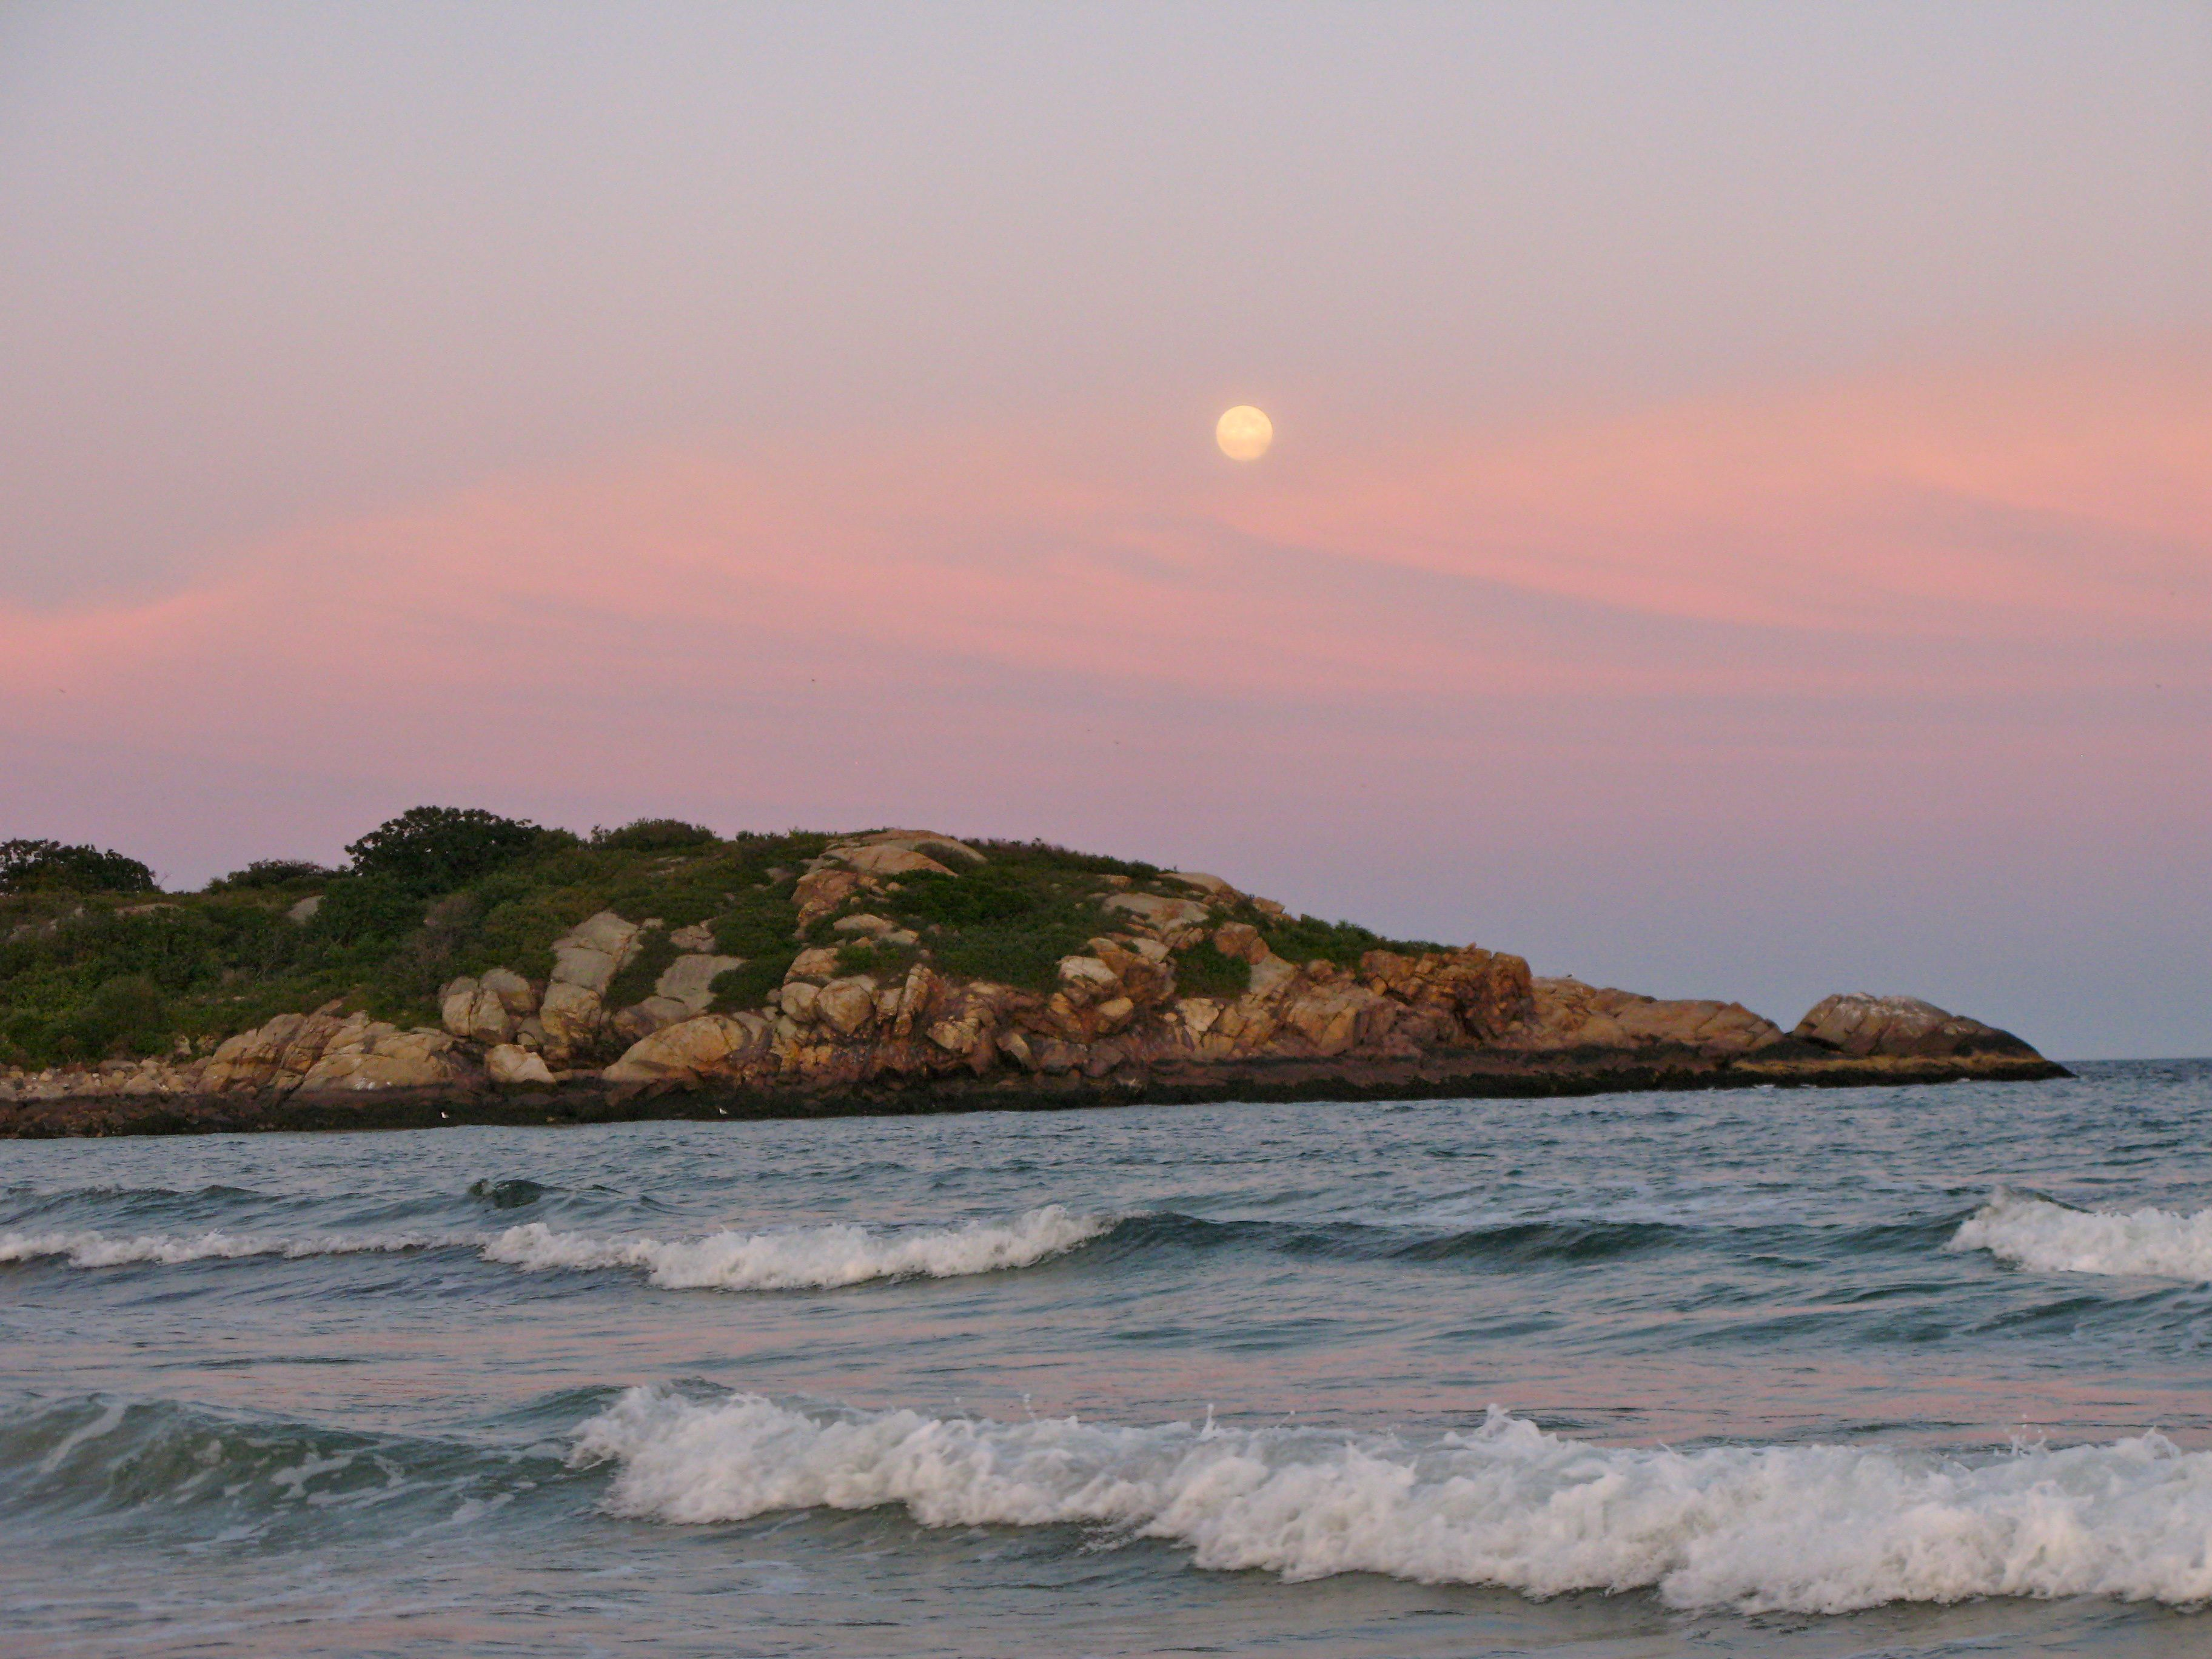 As the sun set, the moon rose over Salt Island in Gloucester.